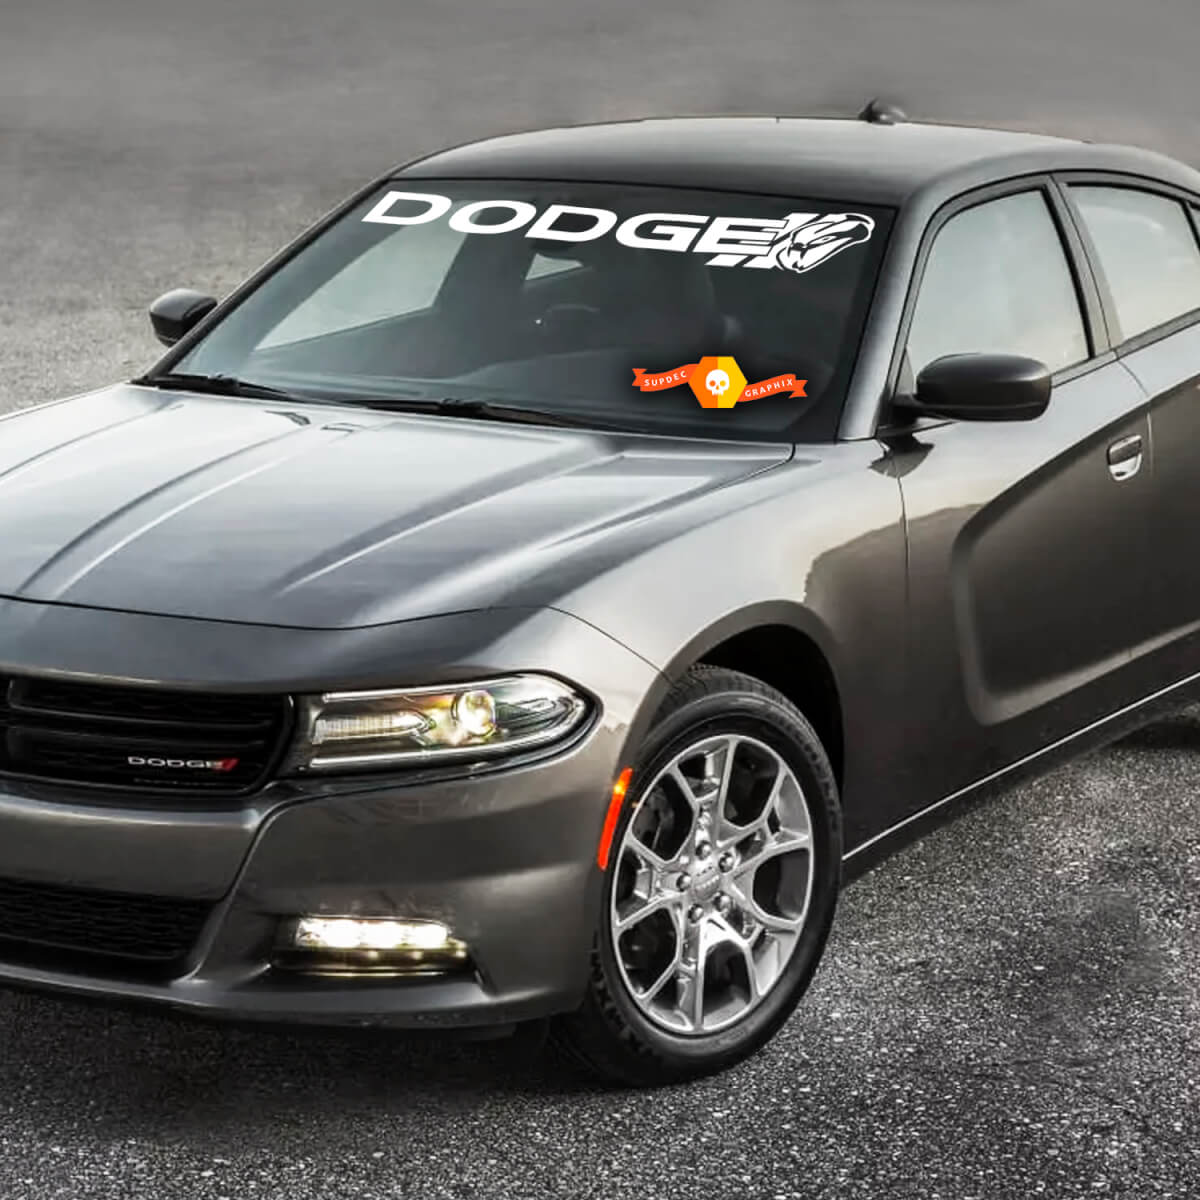 Dodge Charger  Windshield Decal Sticker graphics fits to models 11-16